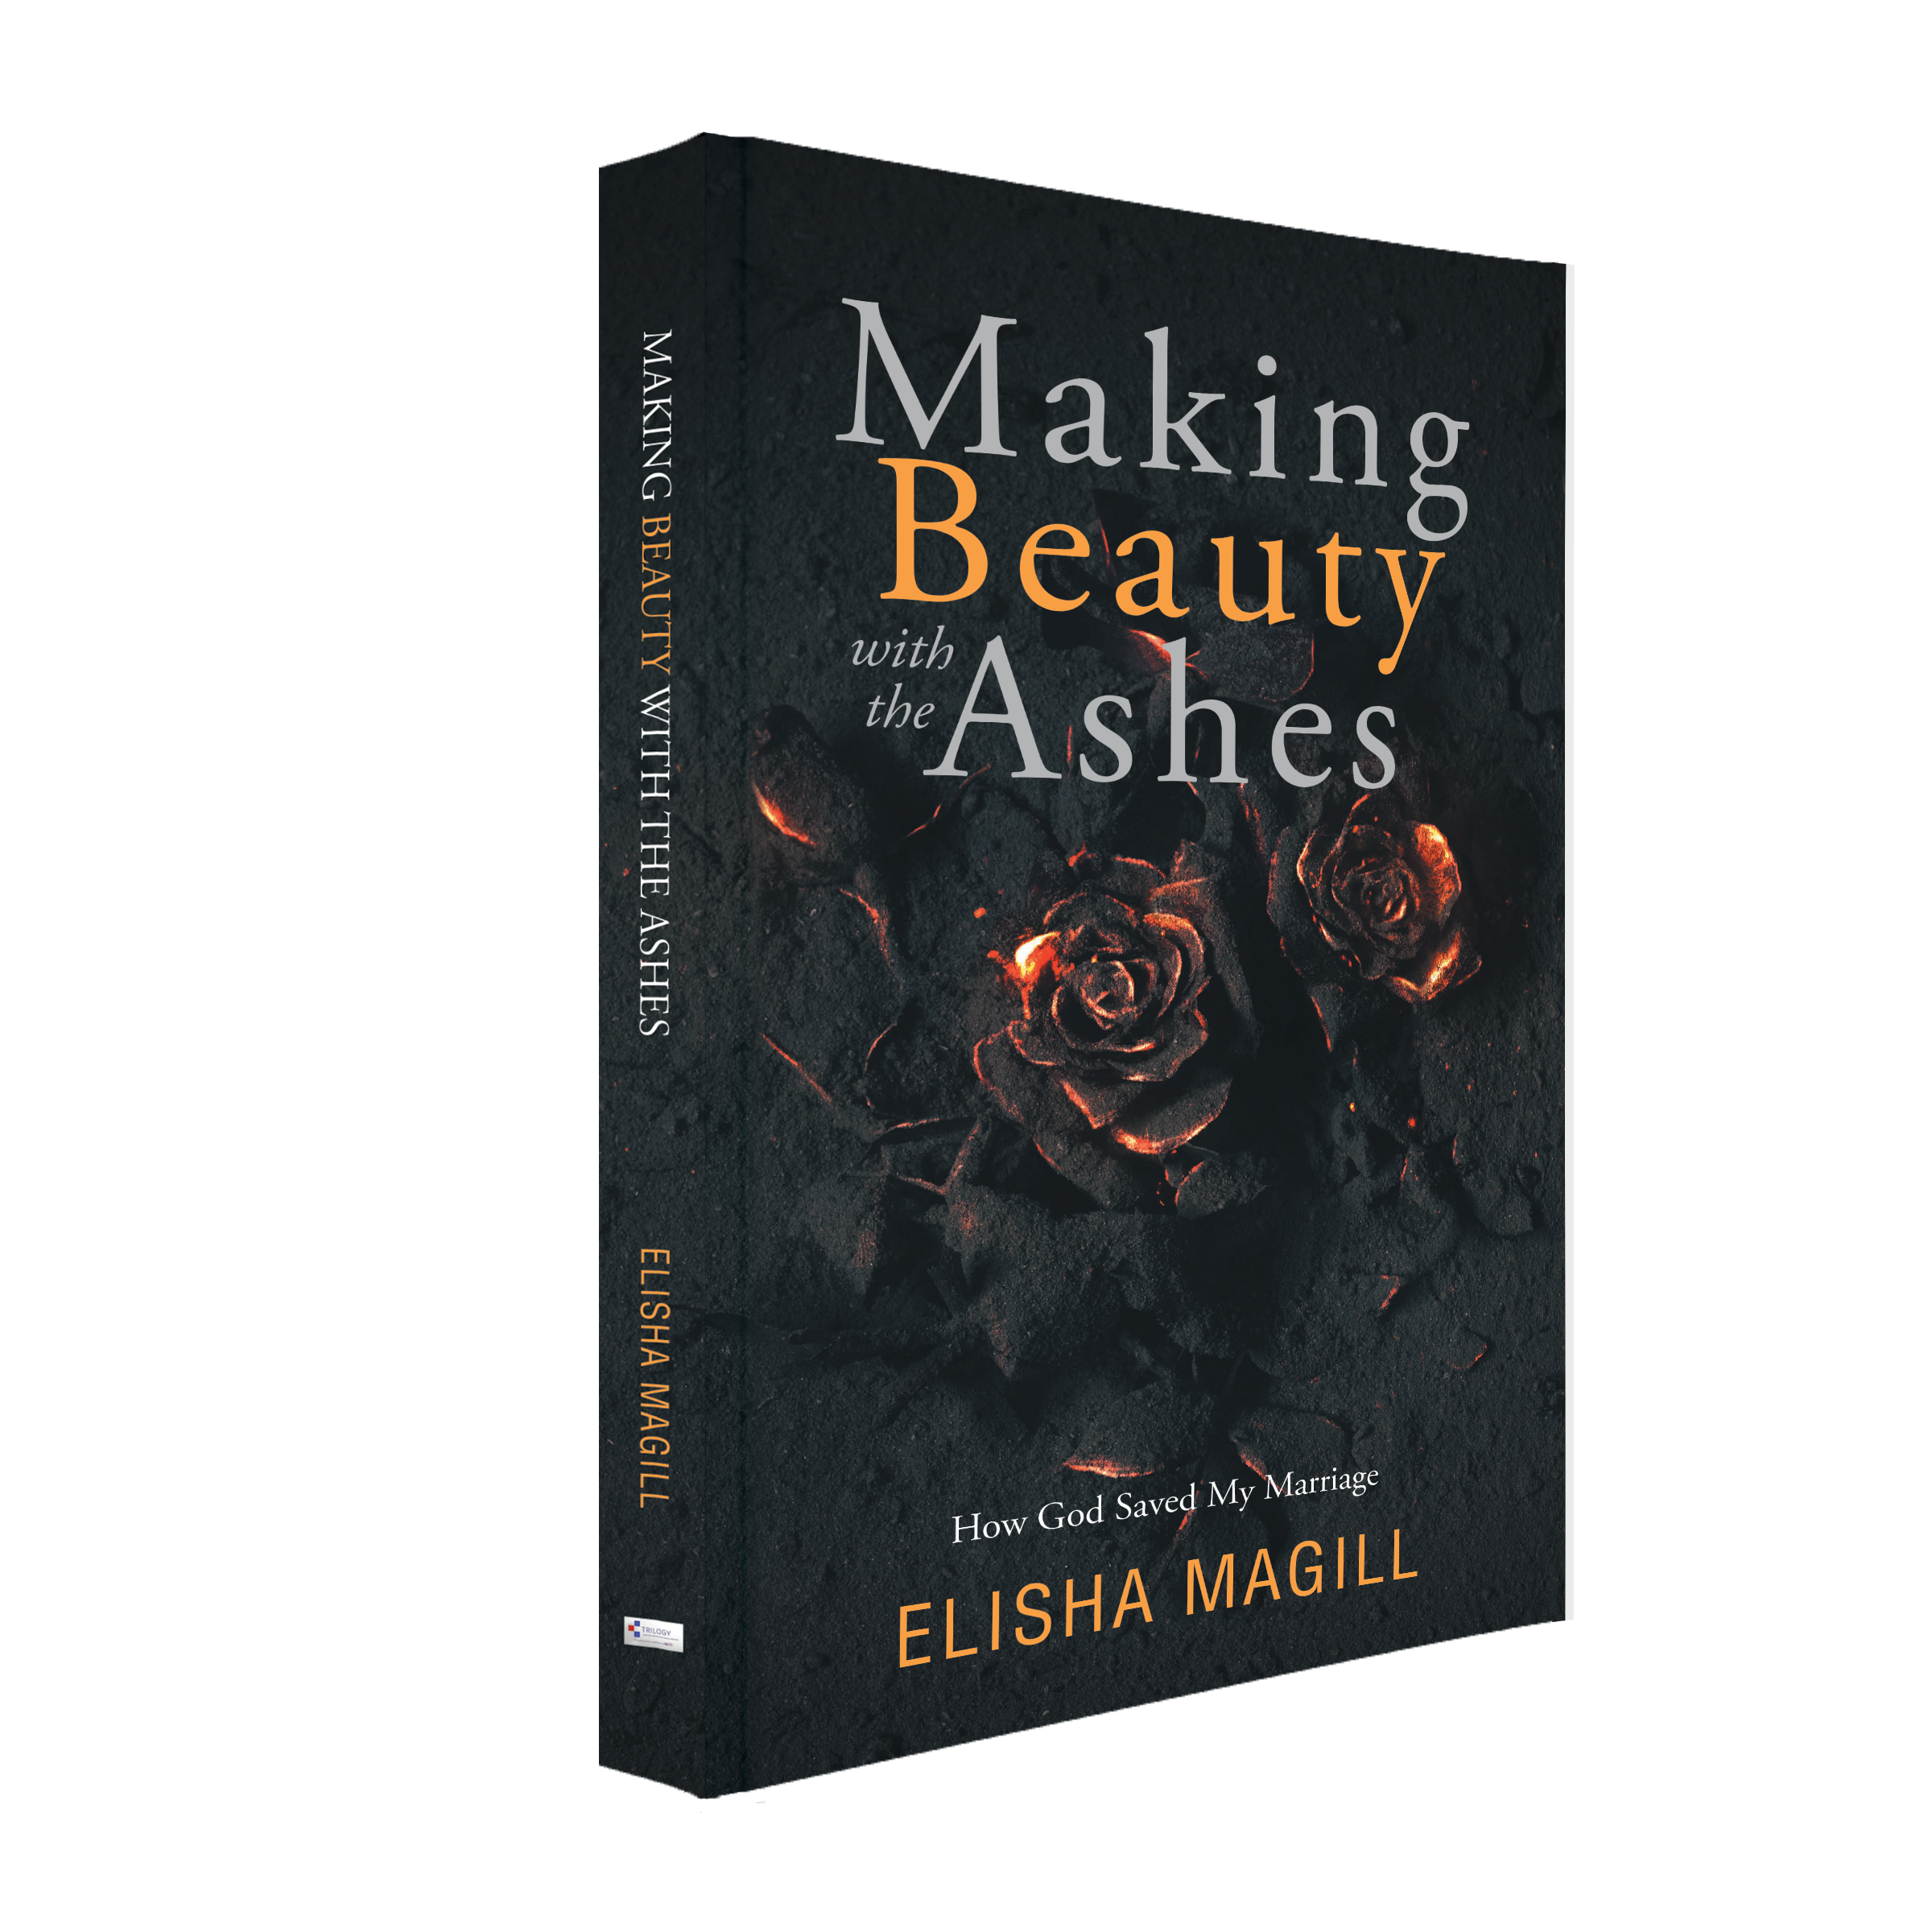 making-beauty-binding-side-out-book-mockups-1